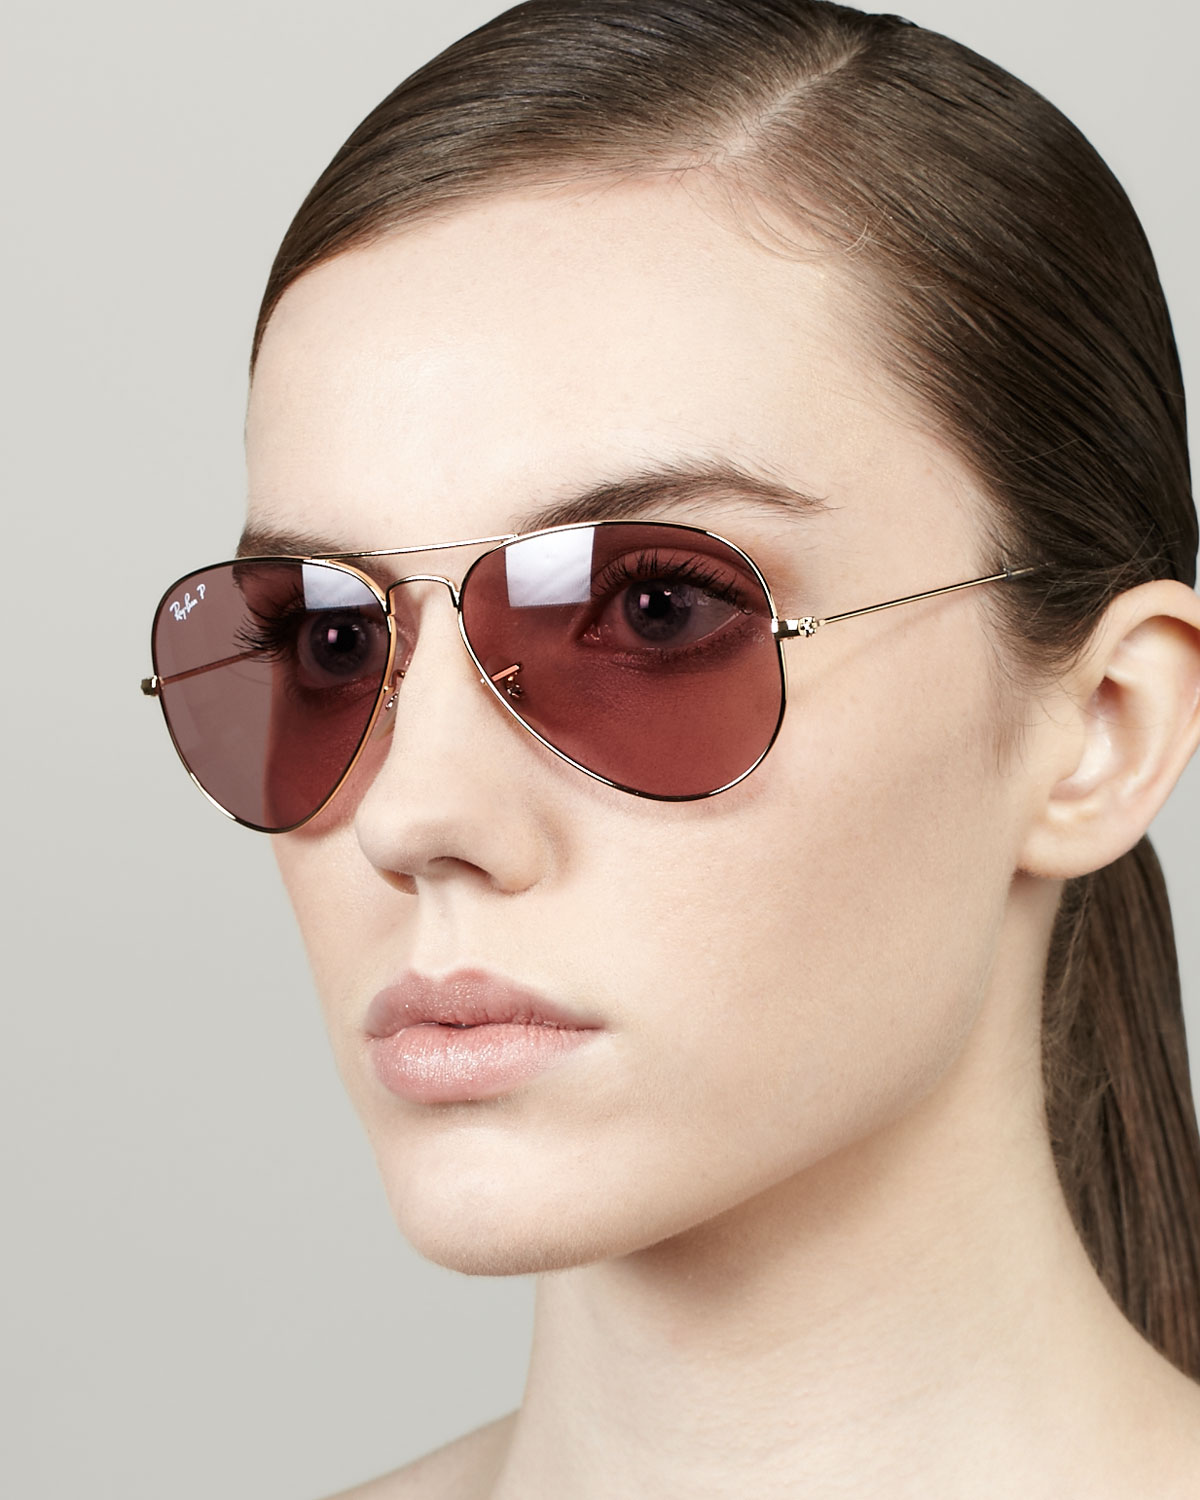 f57d7804c268f Ray-Ban Polarized Aviator Sunglasses Crystal Pink in Pink - Lyst